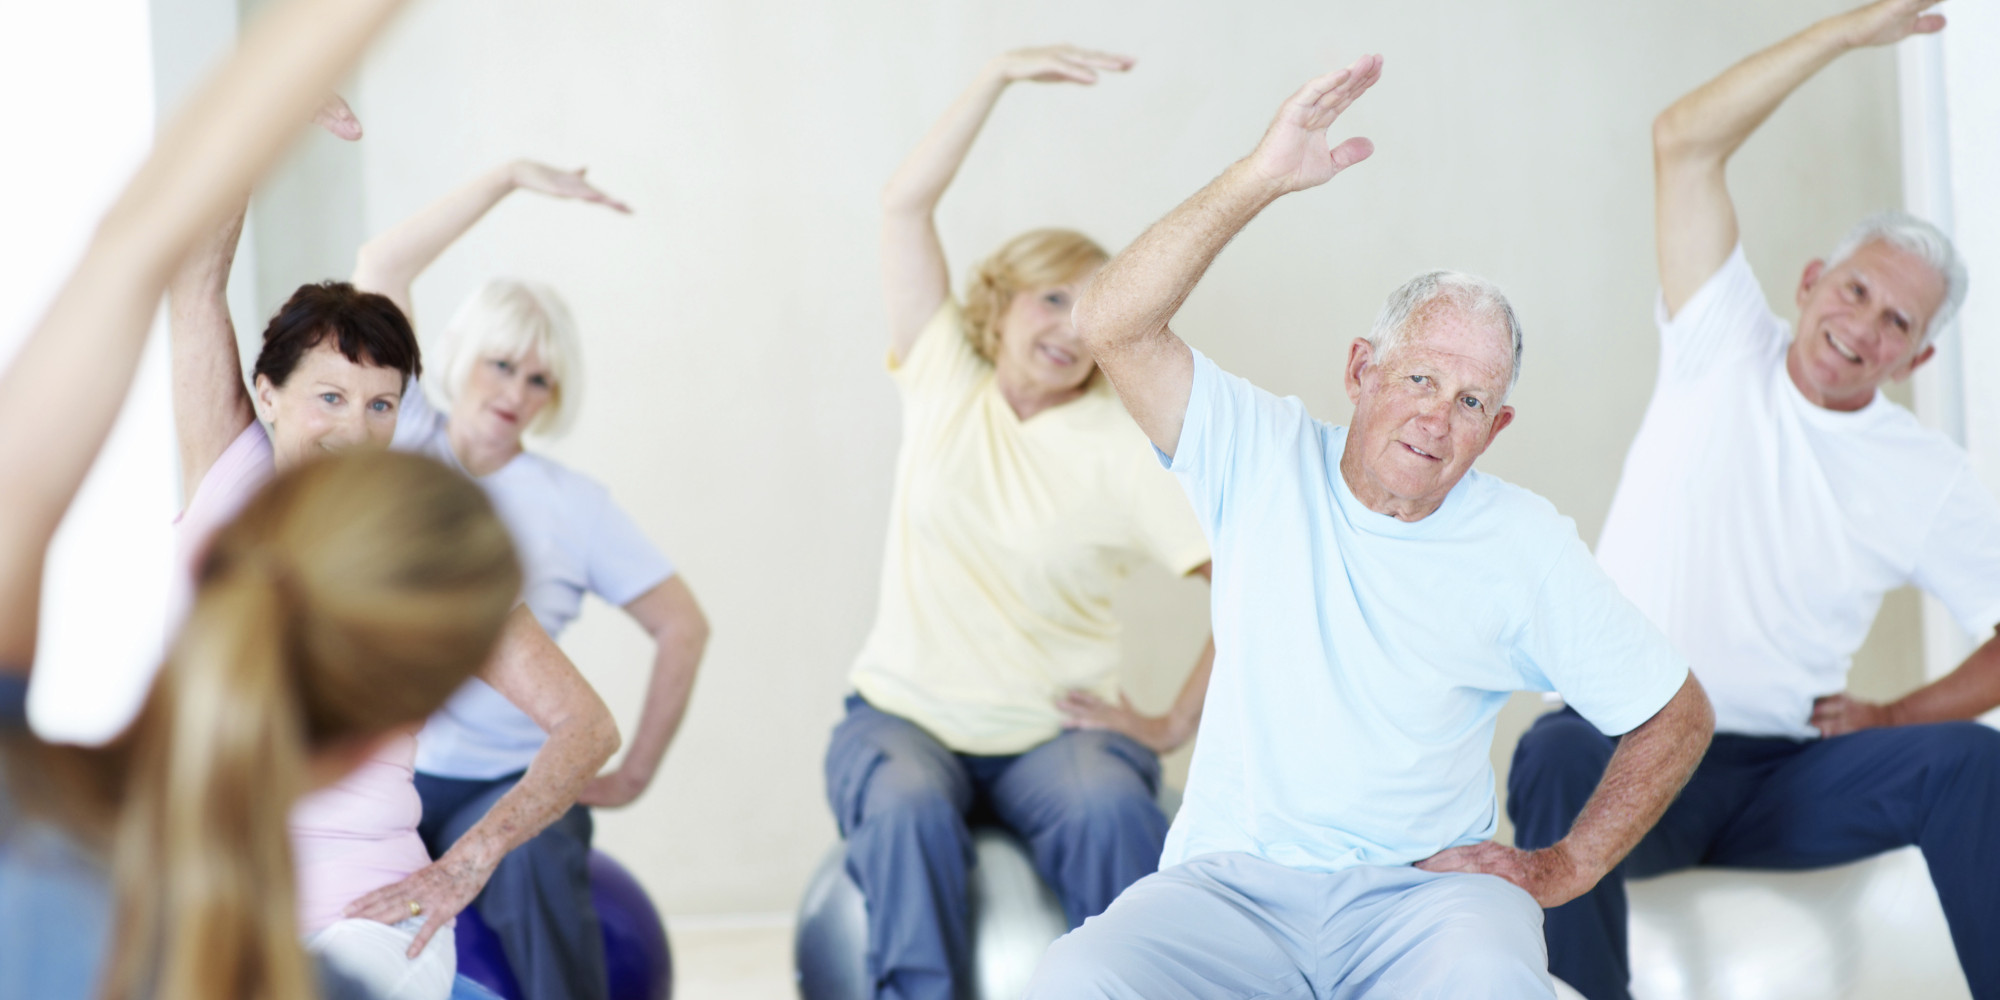 Chair exercises for seniors - Chair Exercises For Seniors 10